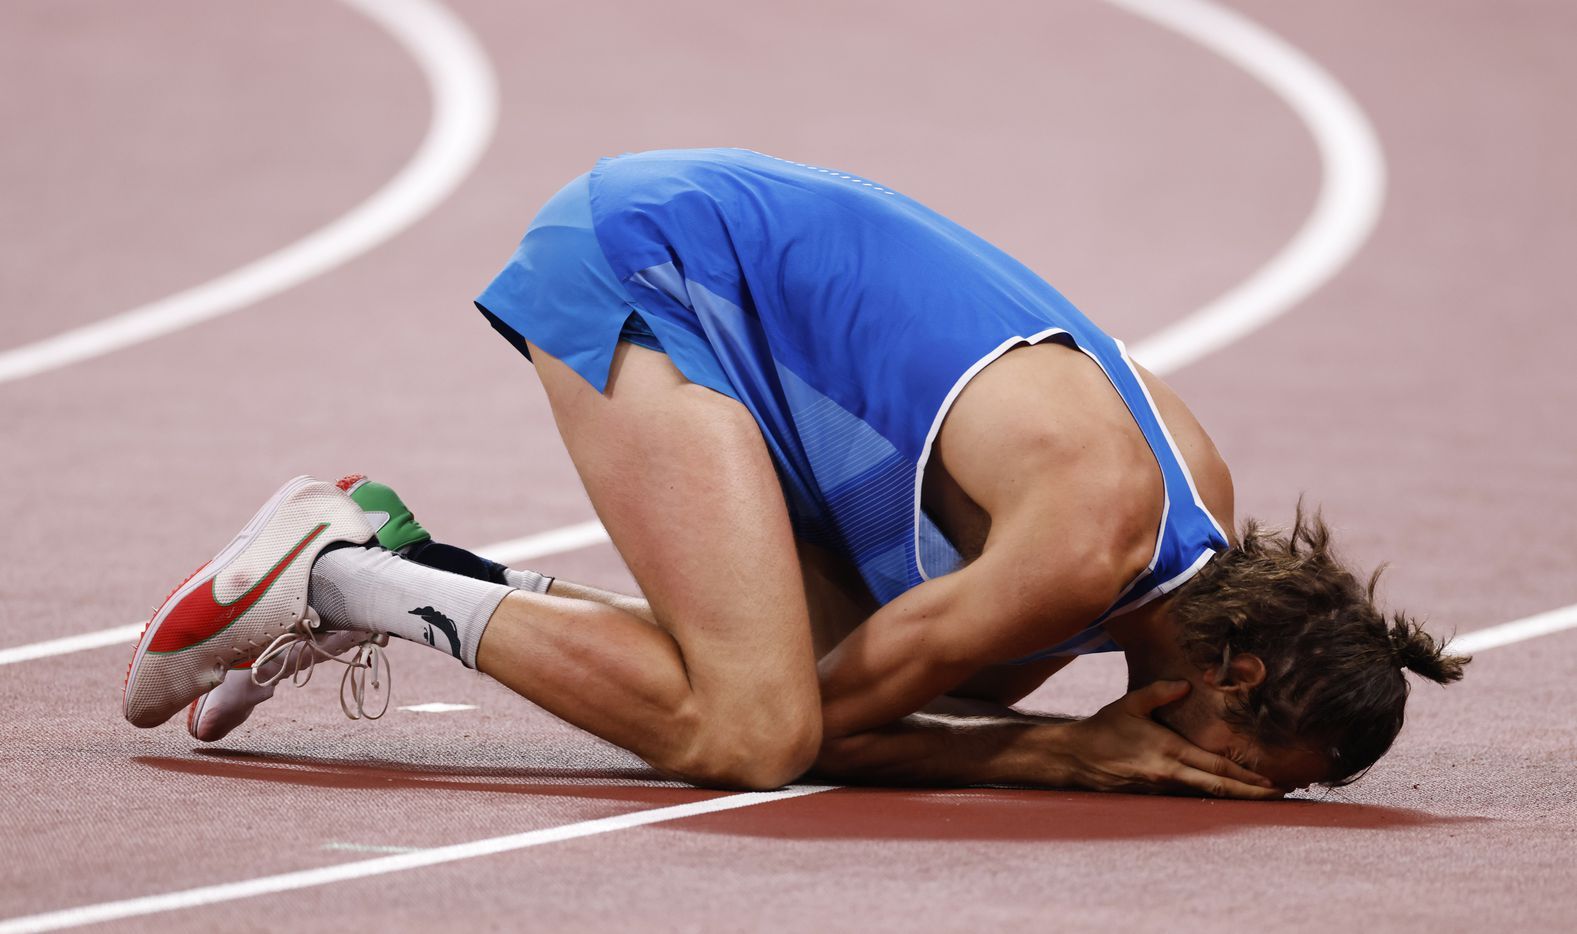 Italy's Gianmarco Tamberi celebrates after winning a gold medal in the men's high jump final during the postponed 2020 Tokyo Olympics at Olympic Stadium, on Sunday, August 1, 2021, in Tokyo, Japan. Tamberi will share a gold medal with Qatar's Mutaz Essa Barshim who also cleared 2.37 meters in the final. (Vernon Bryant/The Dallas Morning News)